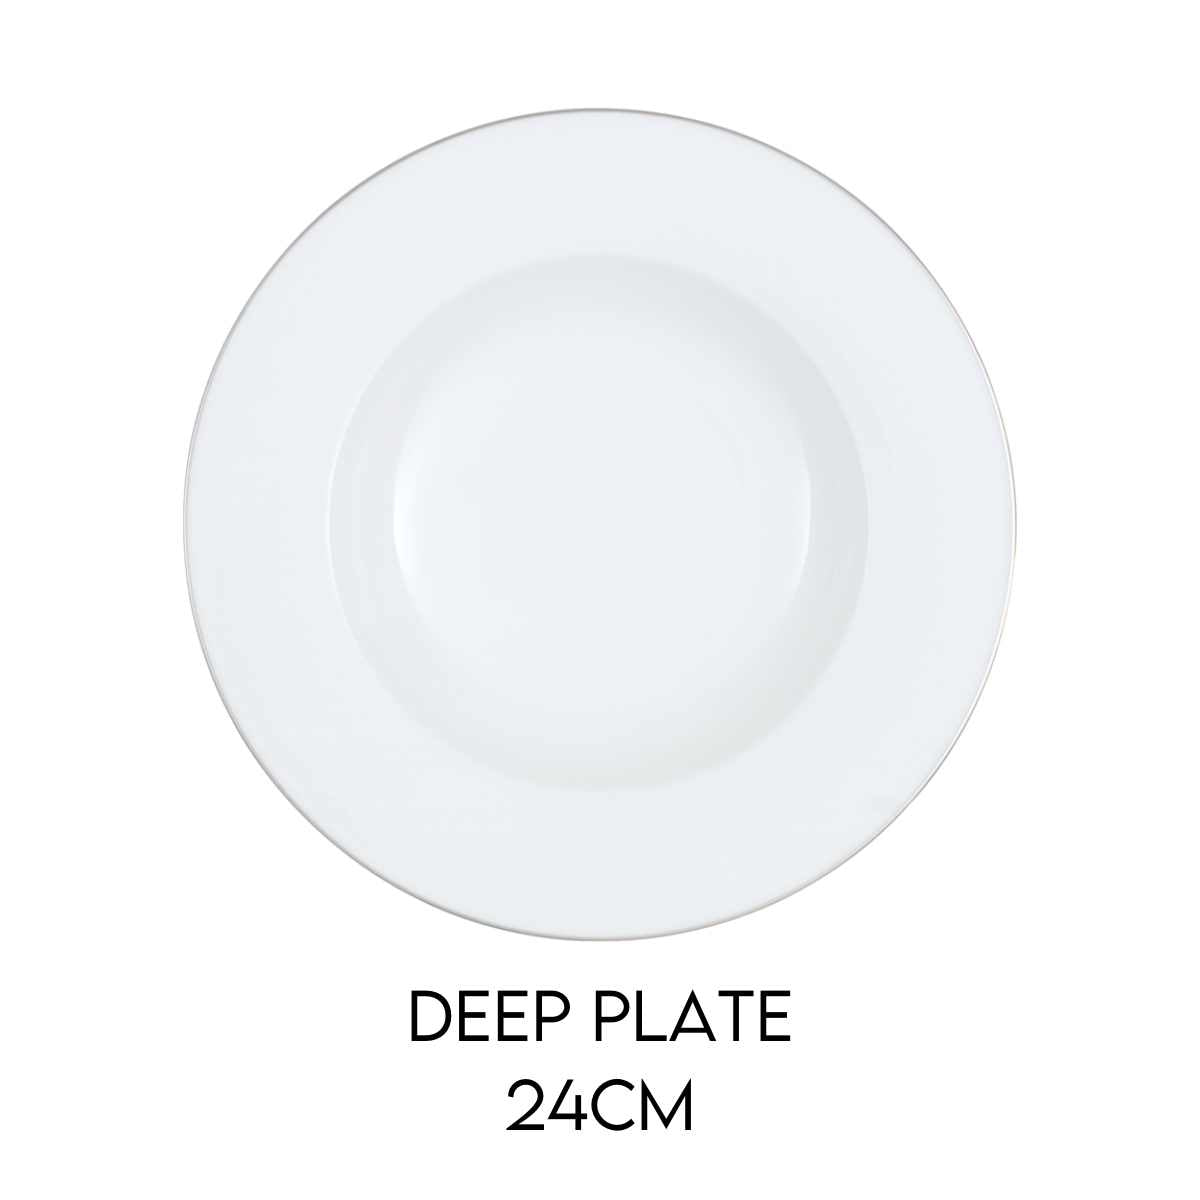 Hostaro Tableware Anmut Platinum Deep Plate